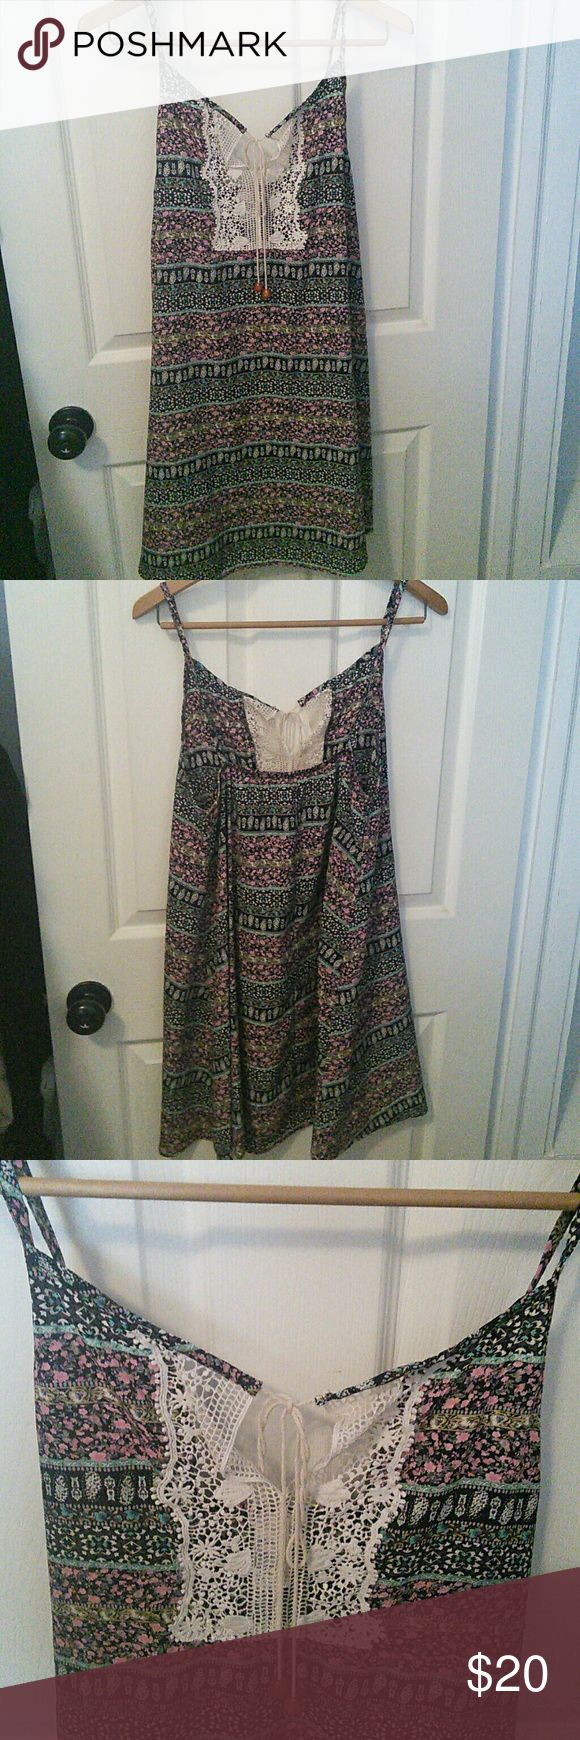 💞💞Beautiful women's sun dress💞💞 💞💞Very pretty sun dress, lovely colors, a little lace in the front adds to it's beauty, flattering length just above the knee💞💞 Pronto Dresses Mini